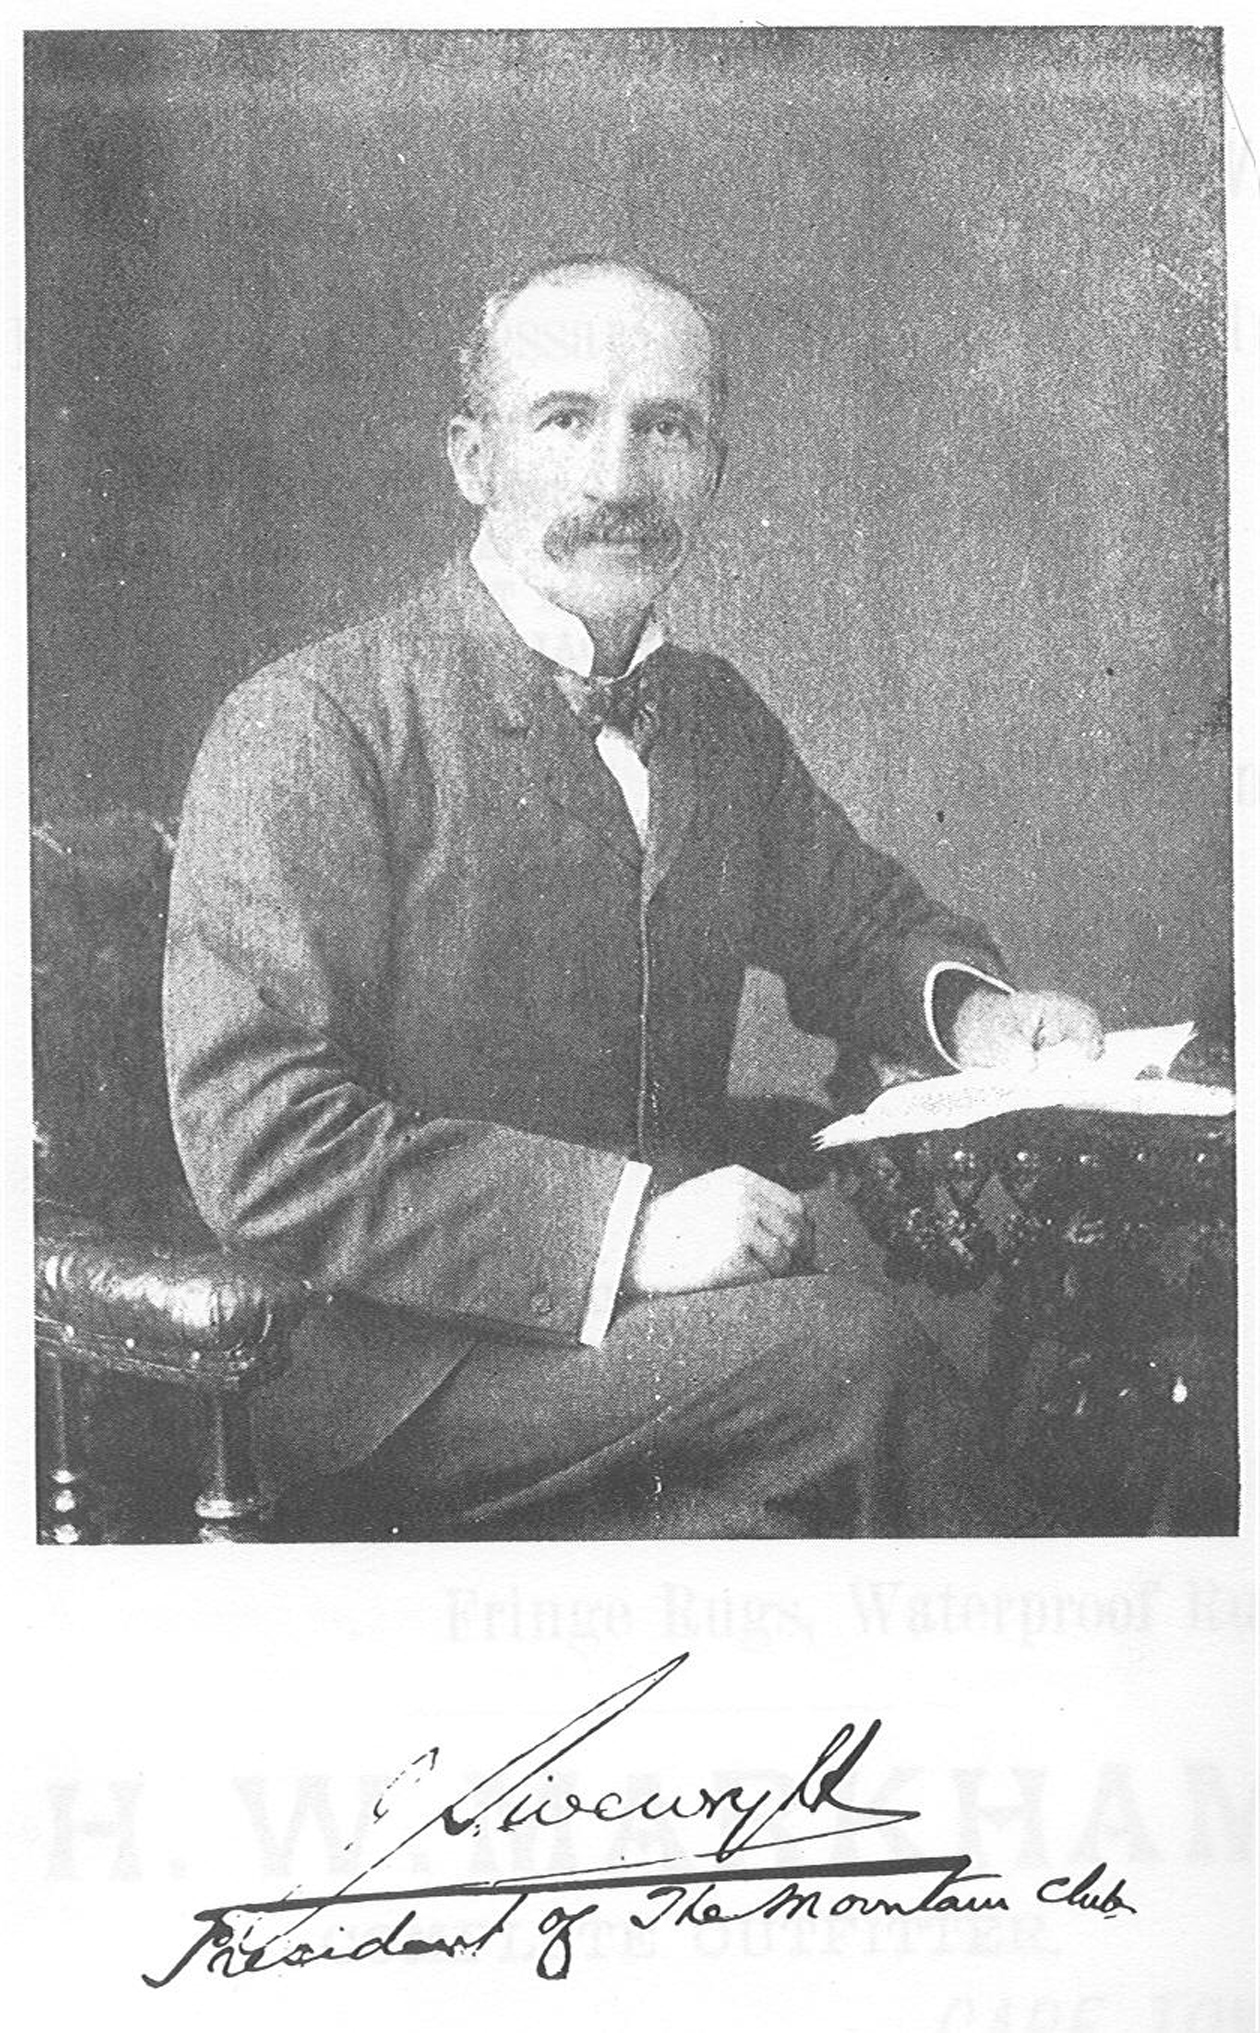 James Sivewright